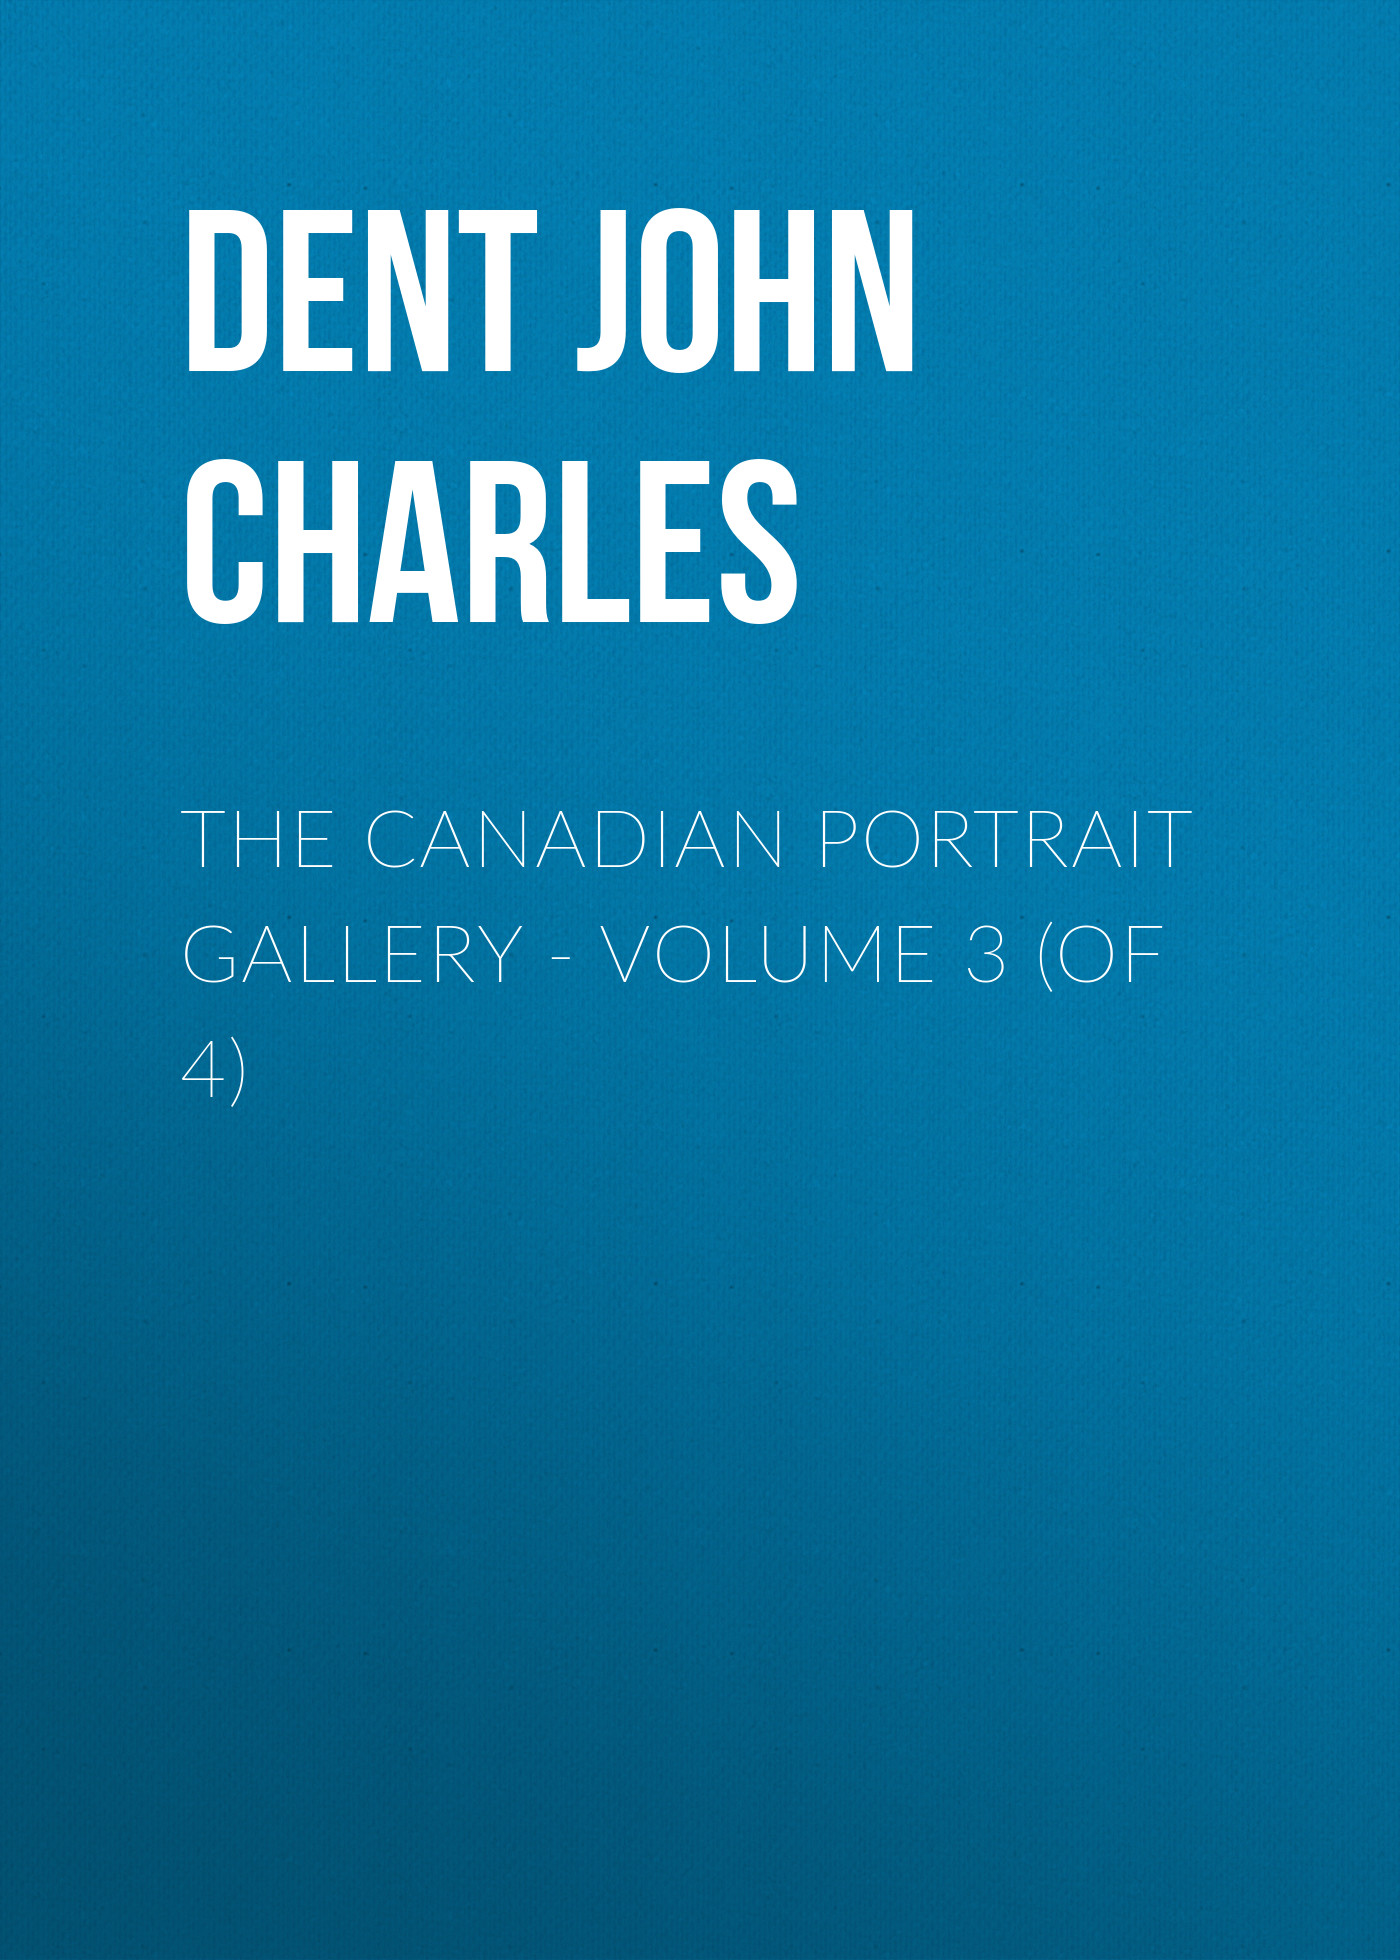 Dent John Charles The Canadian Portrait Gallery - Volume 3 (of 4)